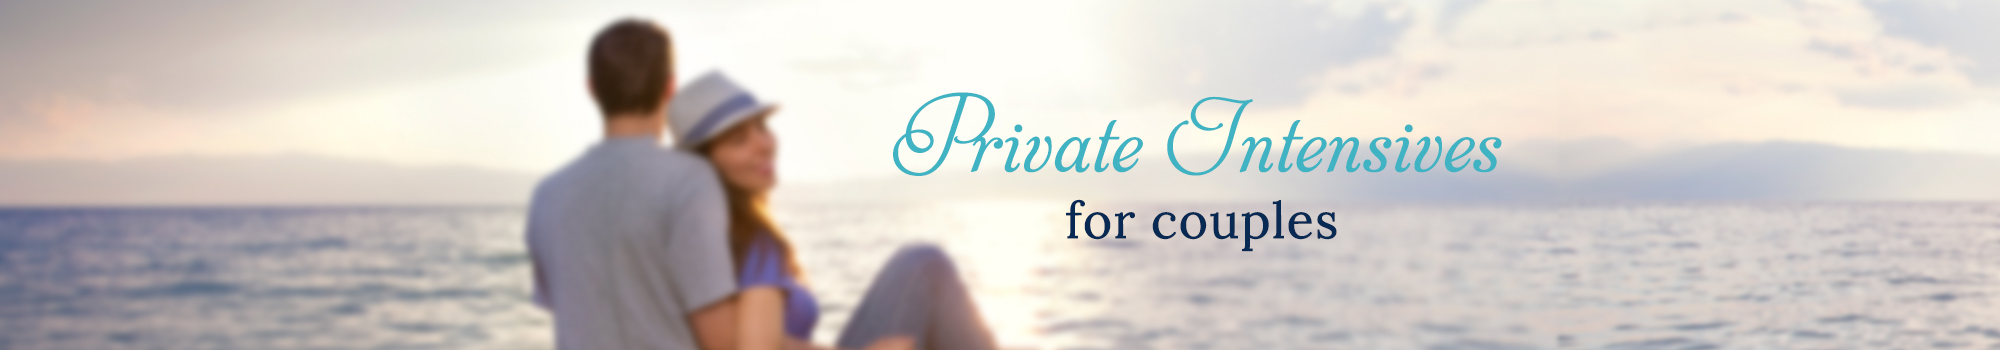 Private-Intensives-for-Couples_Header